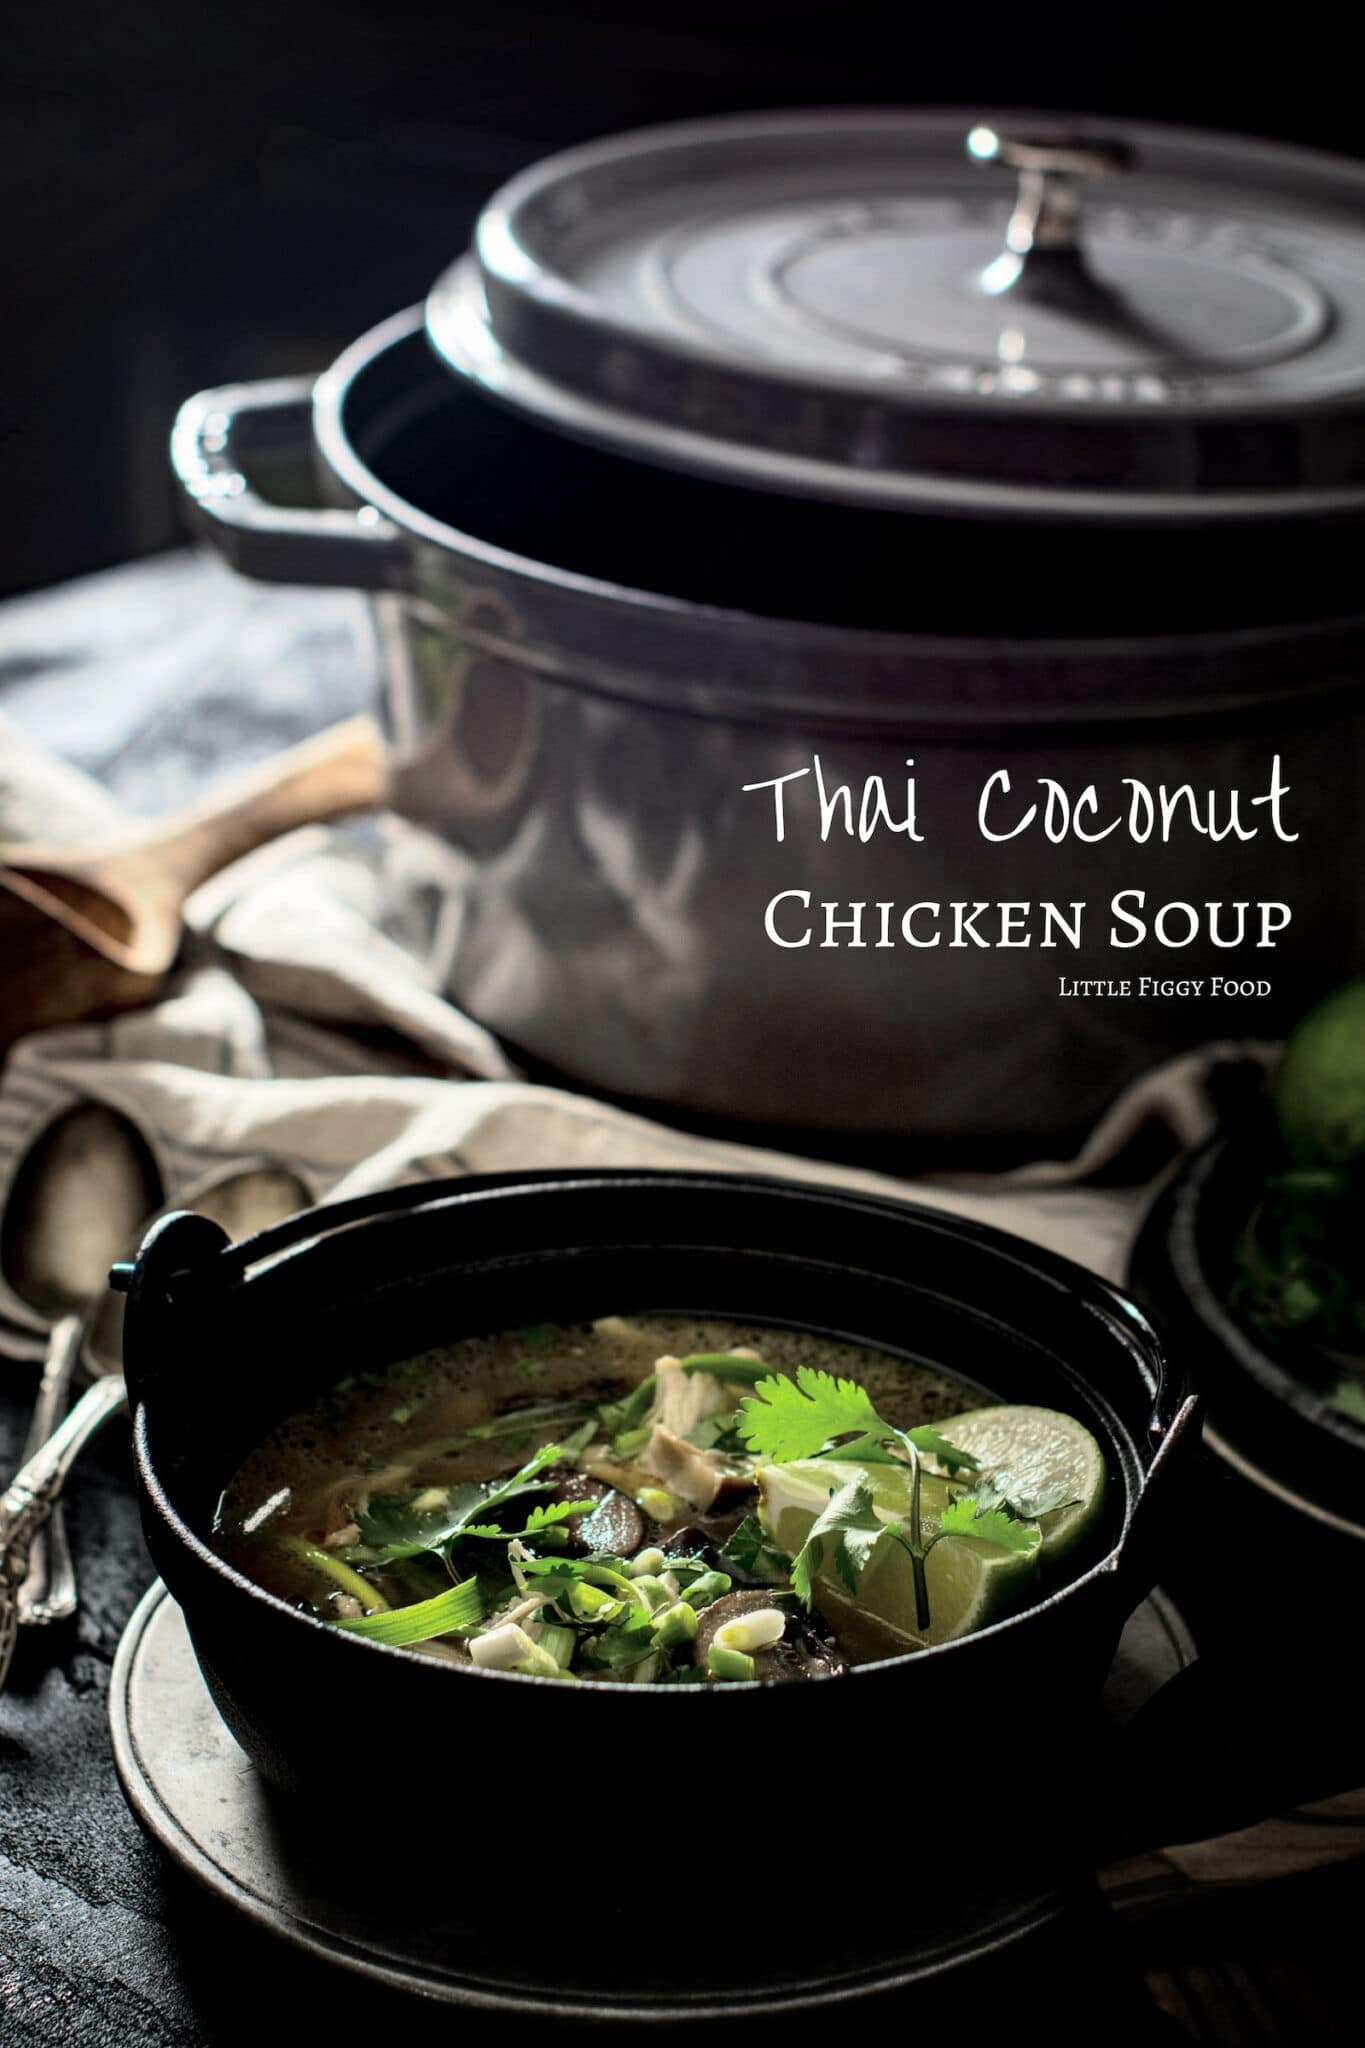 Try this easy to make Thai Coconut Chicken Soup - Tom Kah Gai recipe and enjoy the aromatic, intense flavors to warm you up. Get the recipe at Little Figgy Food. Ad. @zwillingjah #Staub #recipeoftheday #Thaifood #chicken #soupsandstews